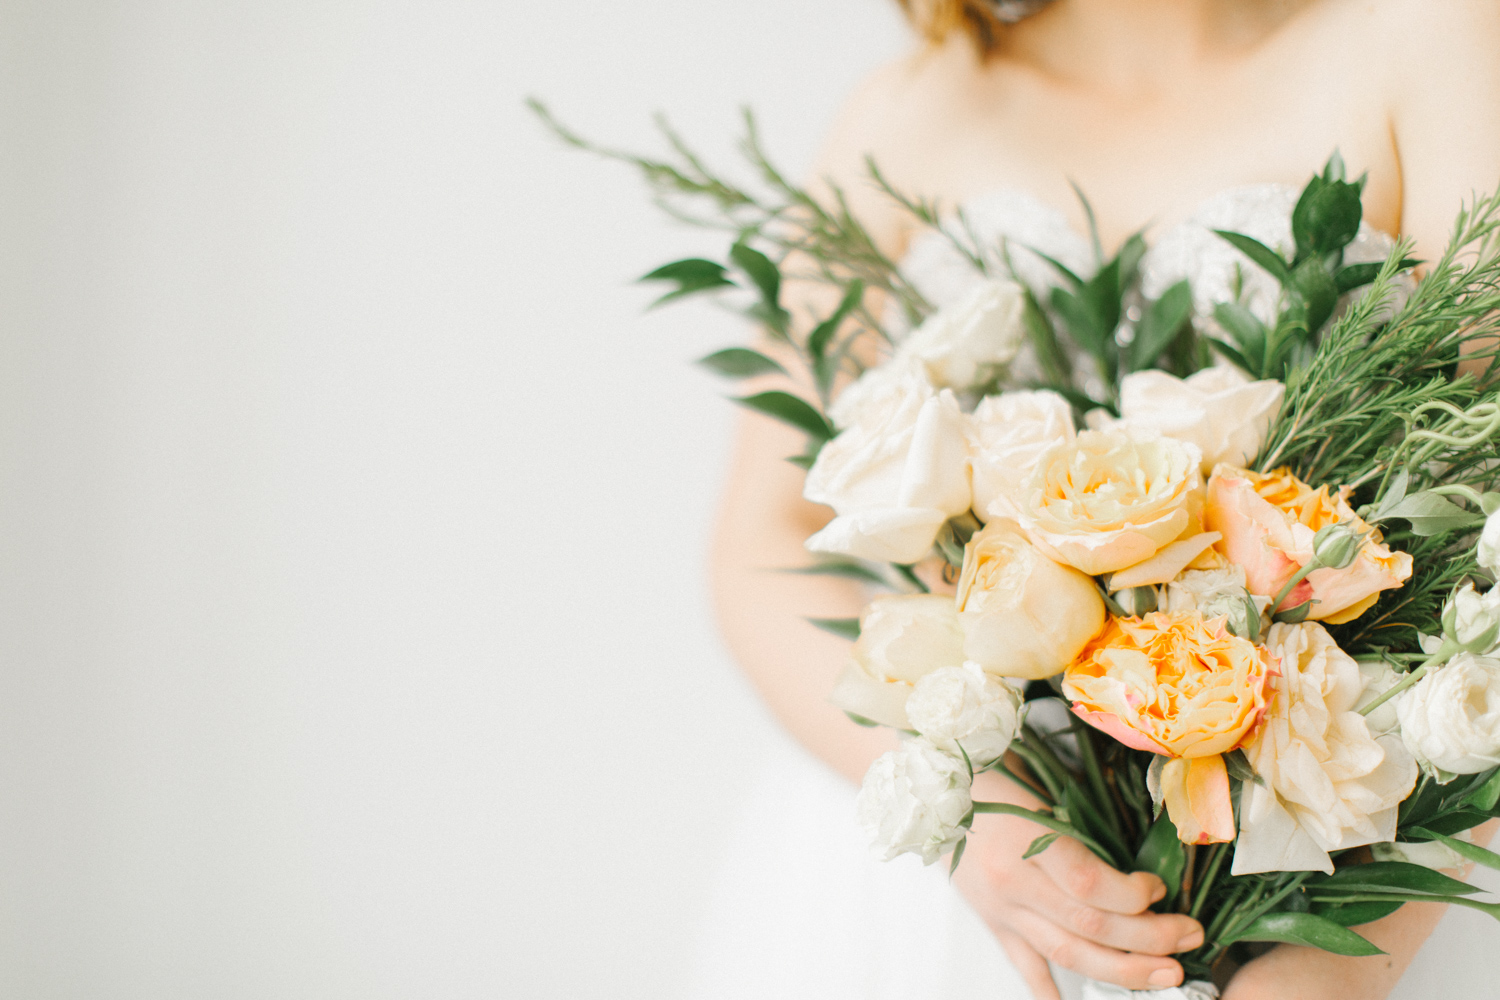 Seattle Fine Art Wedding Photographer | Seattle Downtown White Studio Bridal Session | Stunning Wedding Bouquet | Seattle Bride | Seattle Wedding | Photography Studio Space | Emma Rose Company Wedding Photography-21.jpg